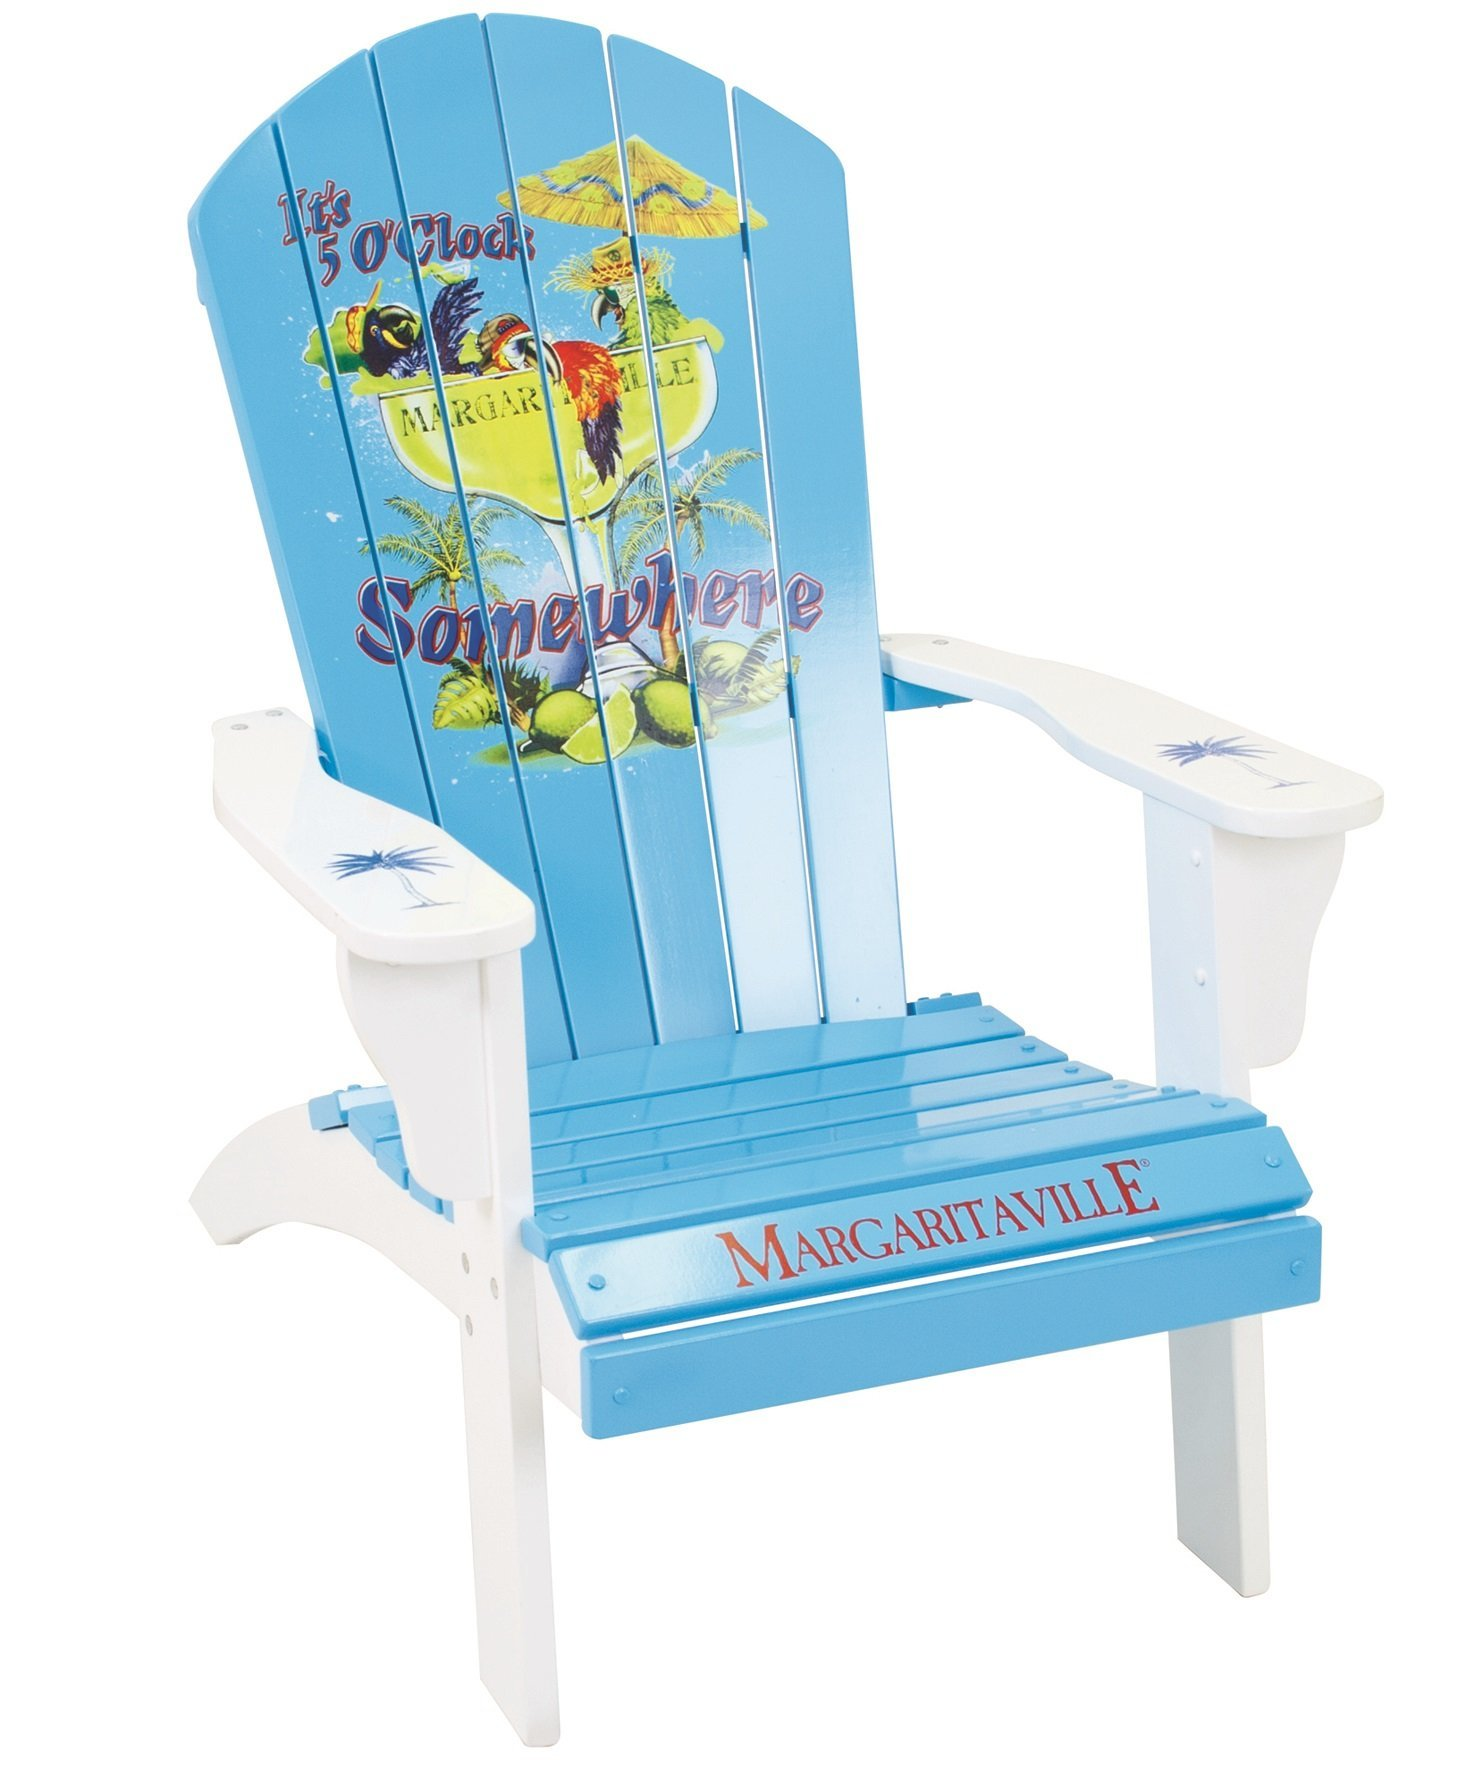 Margaritaville Outdoor Adirondack Chair, It's 5 o'clock Somewhere, Light Blue by Margaritaville Outdoor